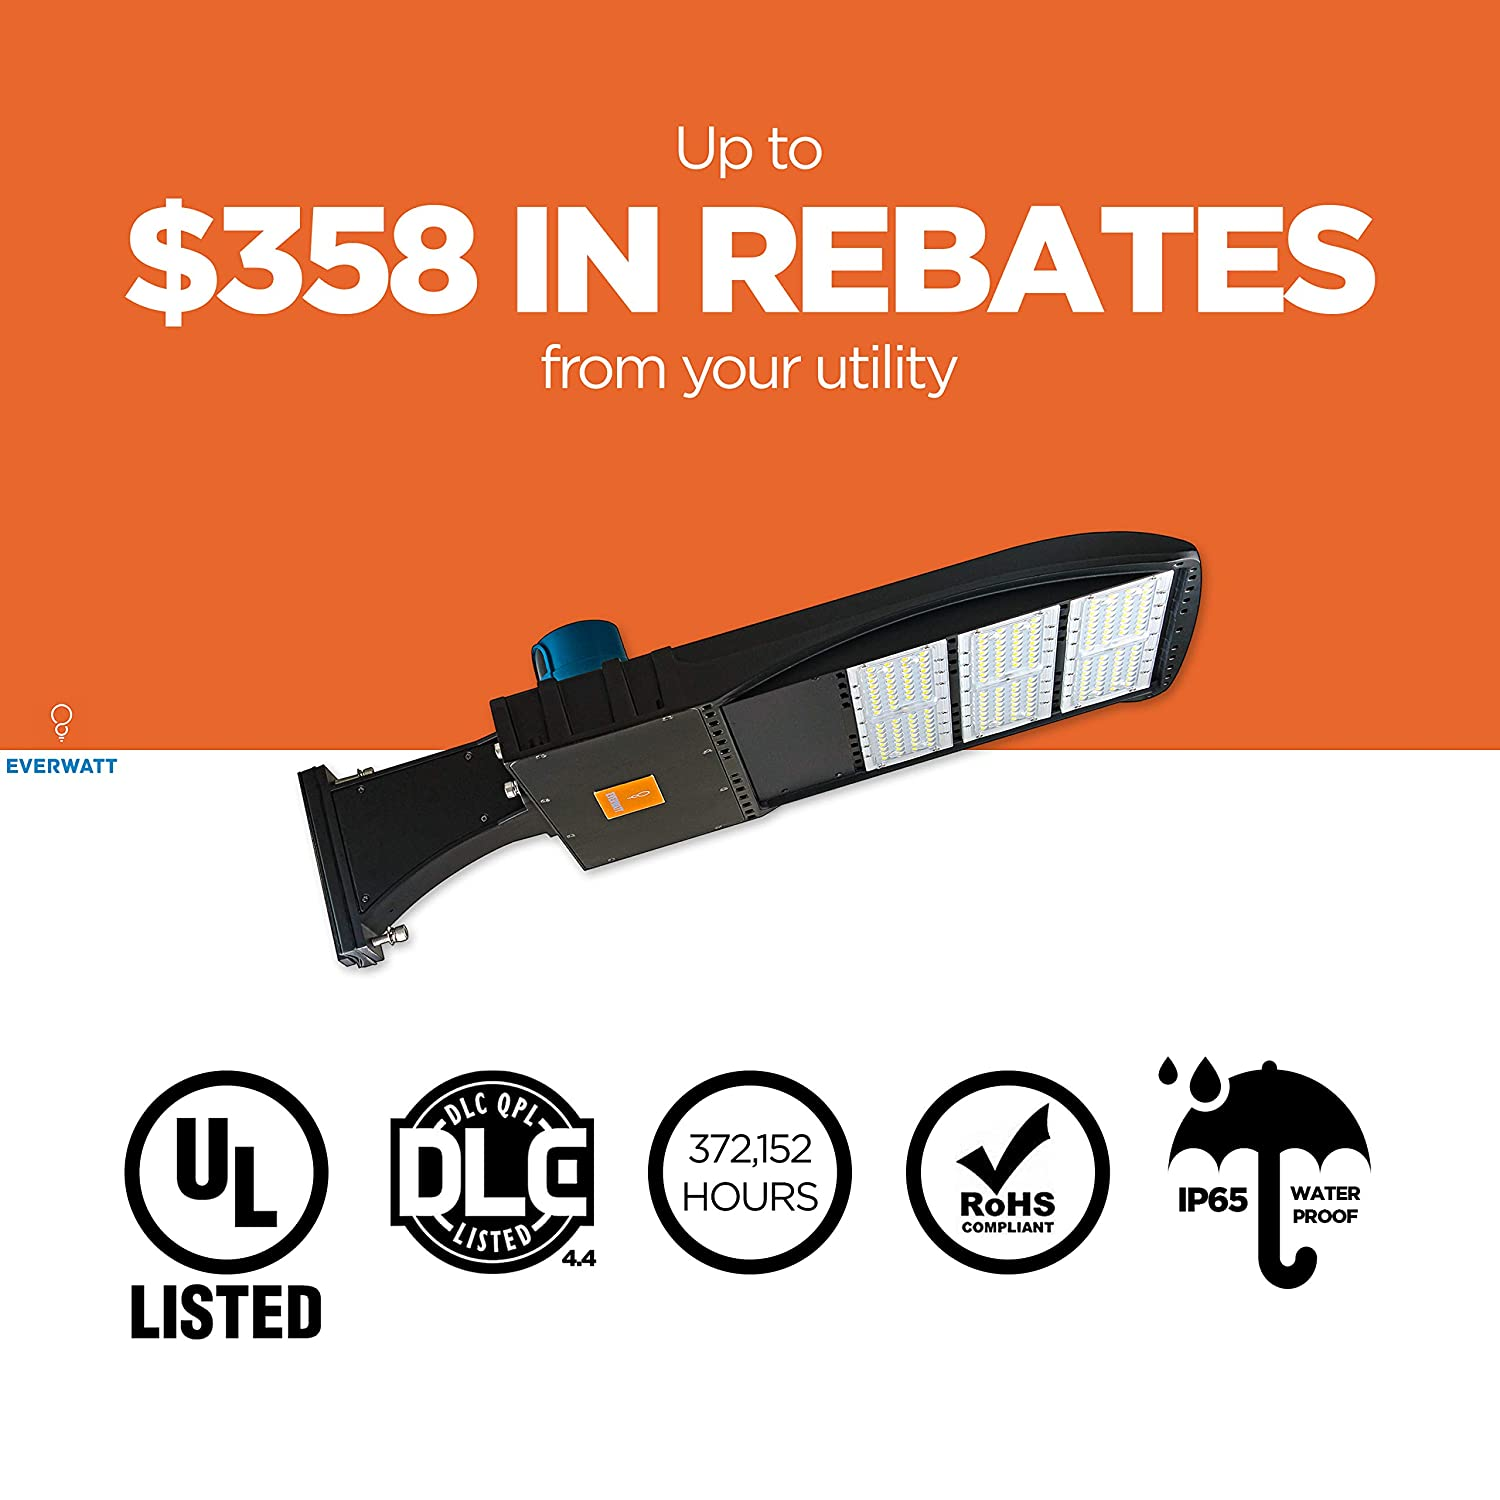 185W LED Outdoor Parking Lot Light with Photocell Sensor 5000K Slip Fit Mount Waterproof 25000 Lm Surge Protector Shoe Box Pole Lights EverWatt 750W Metal-Halide Equivalent Replacement